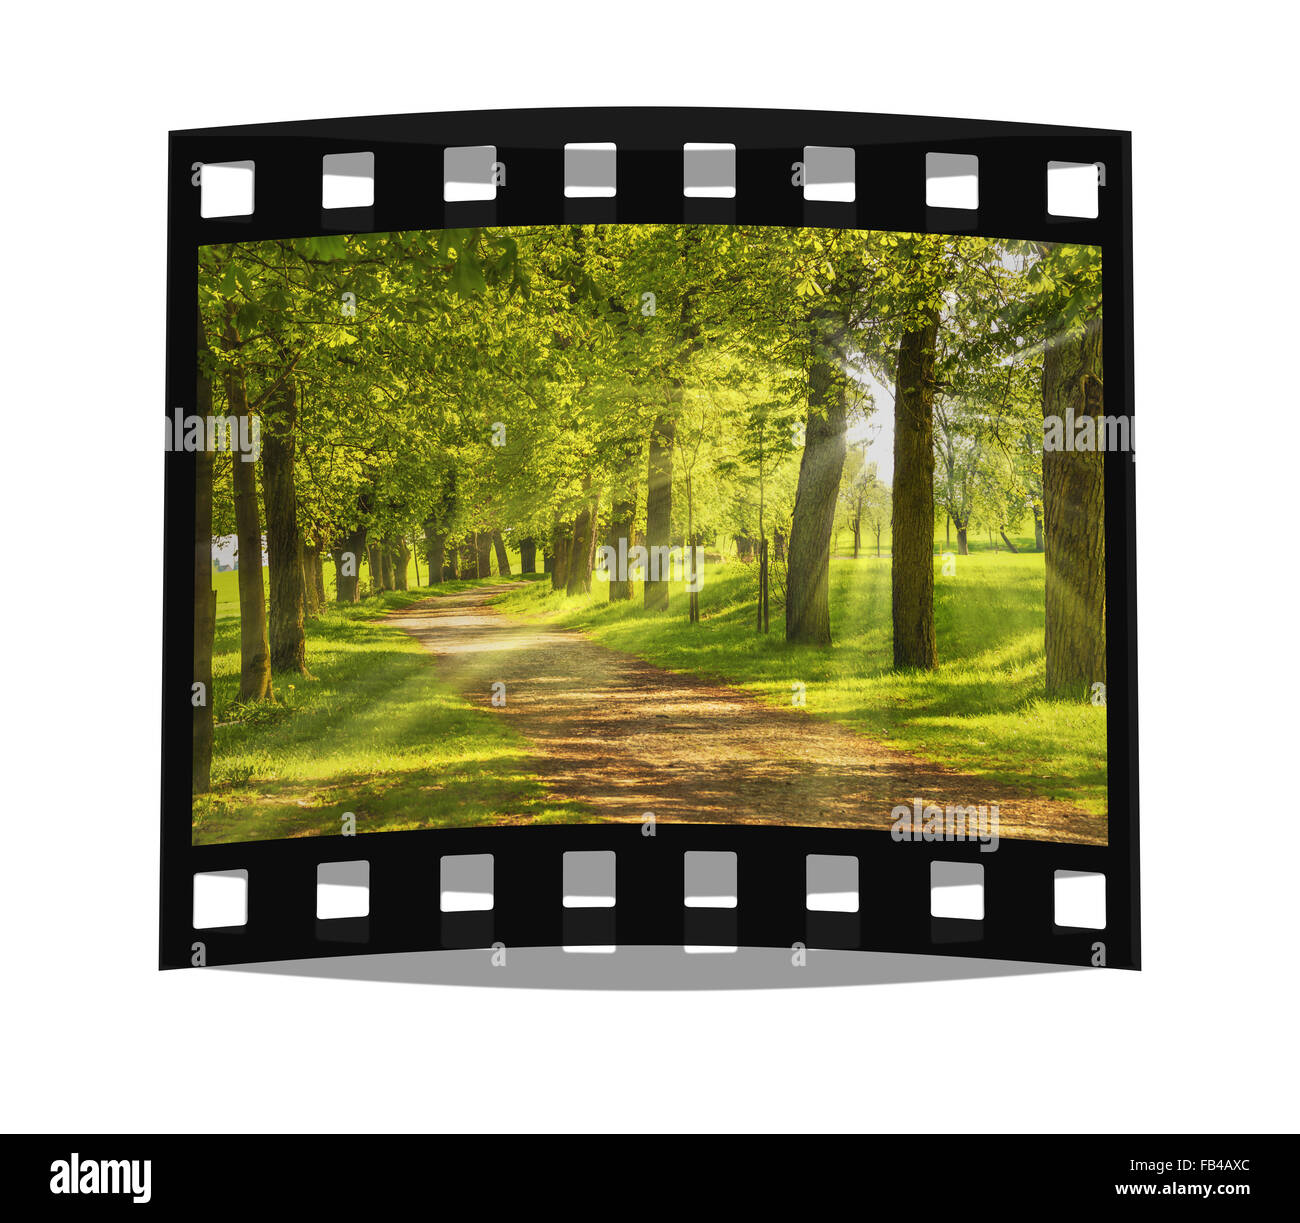 Avenue of trees, the sun shining through the trees - Stock Image